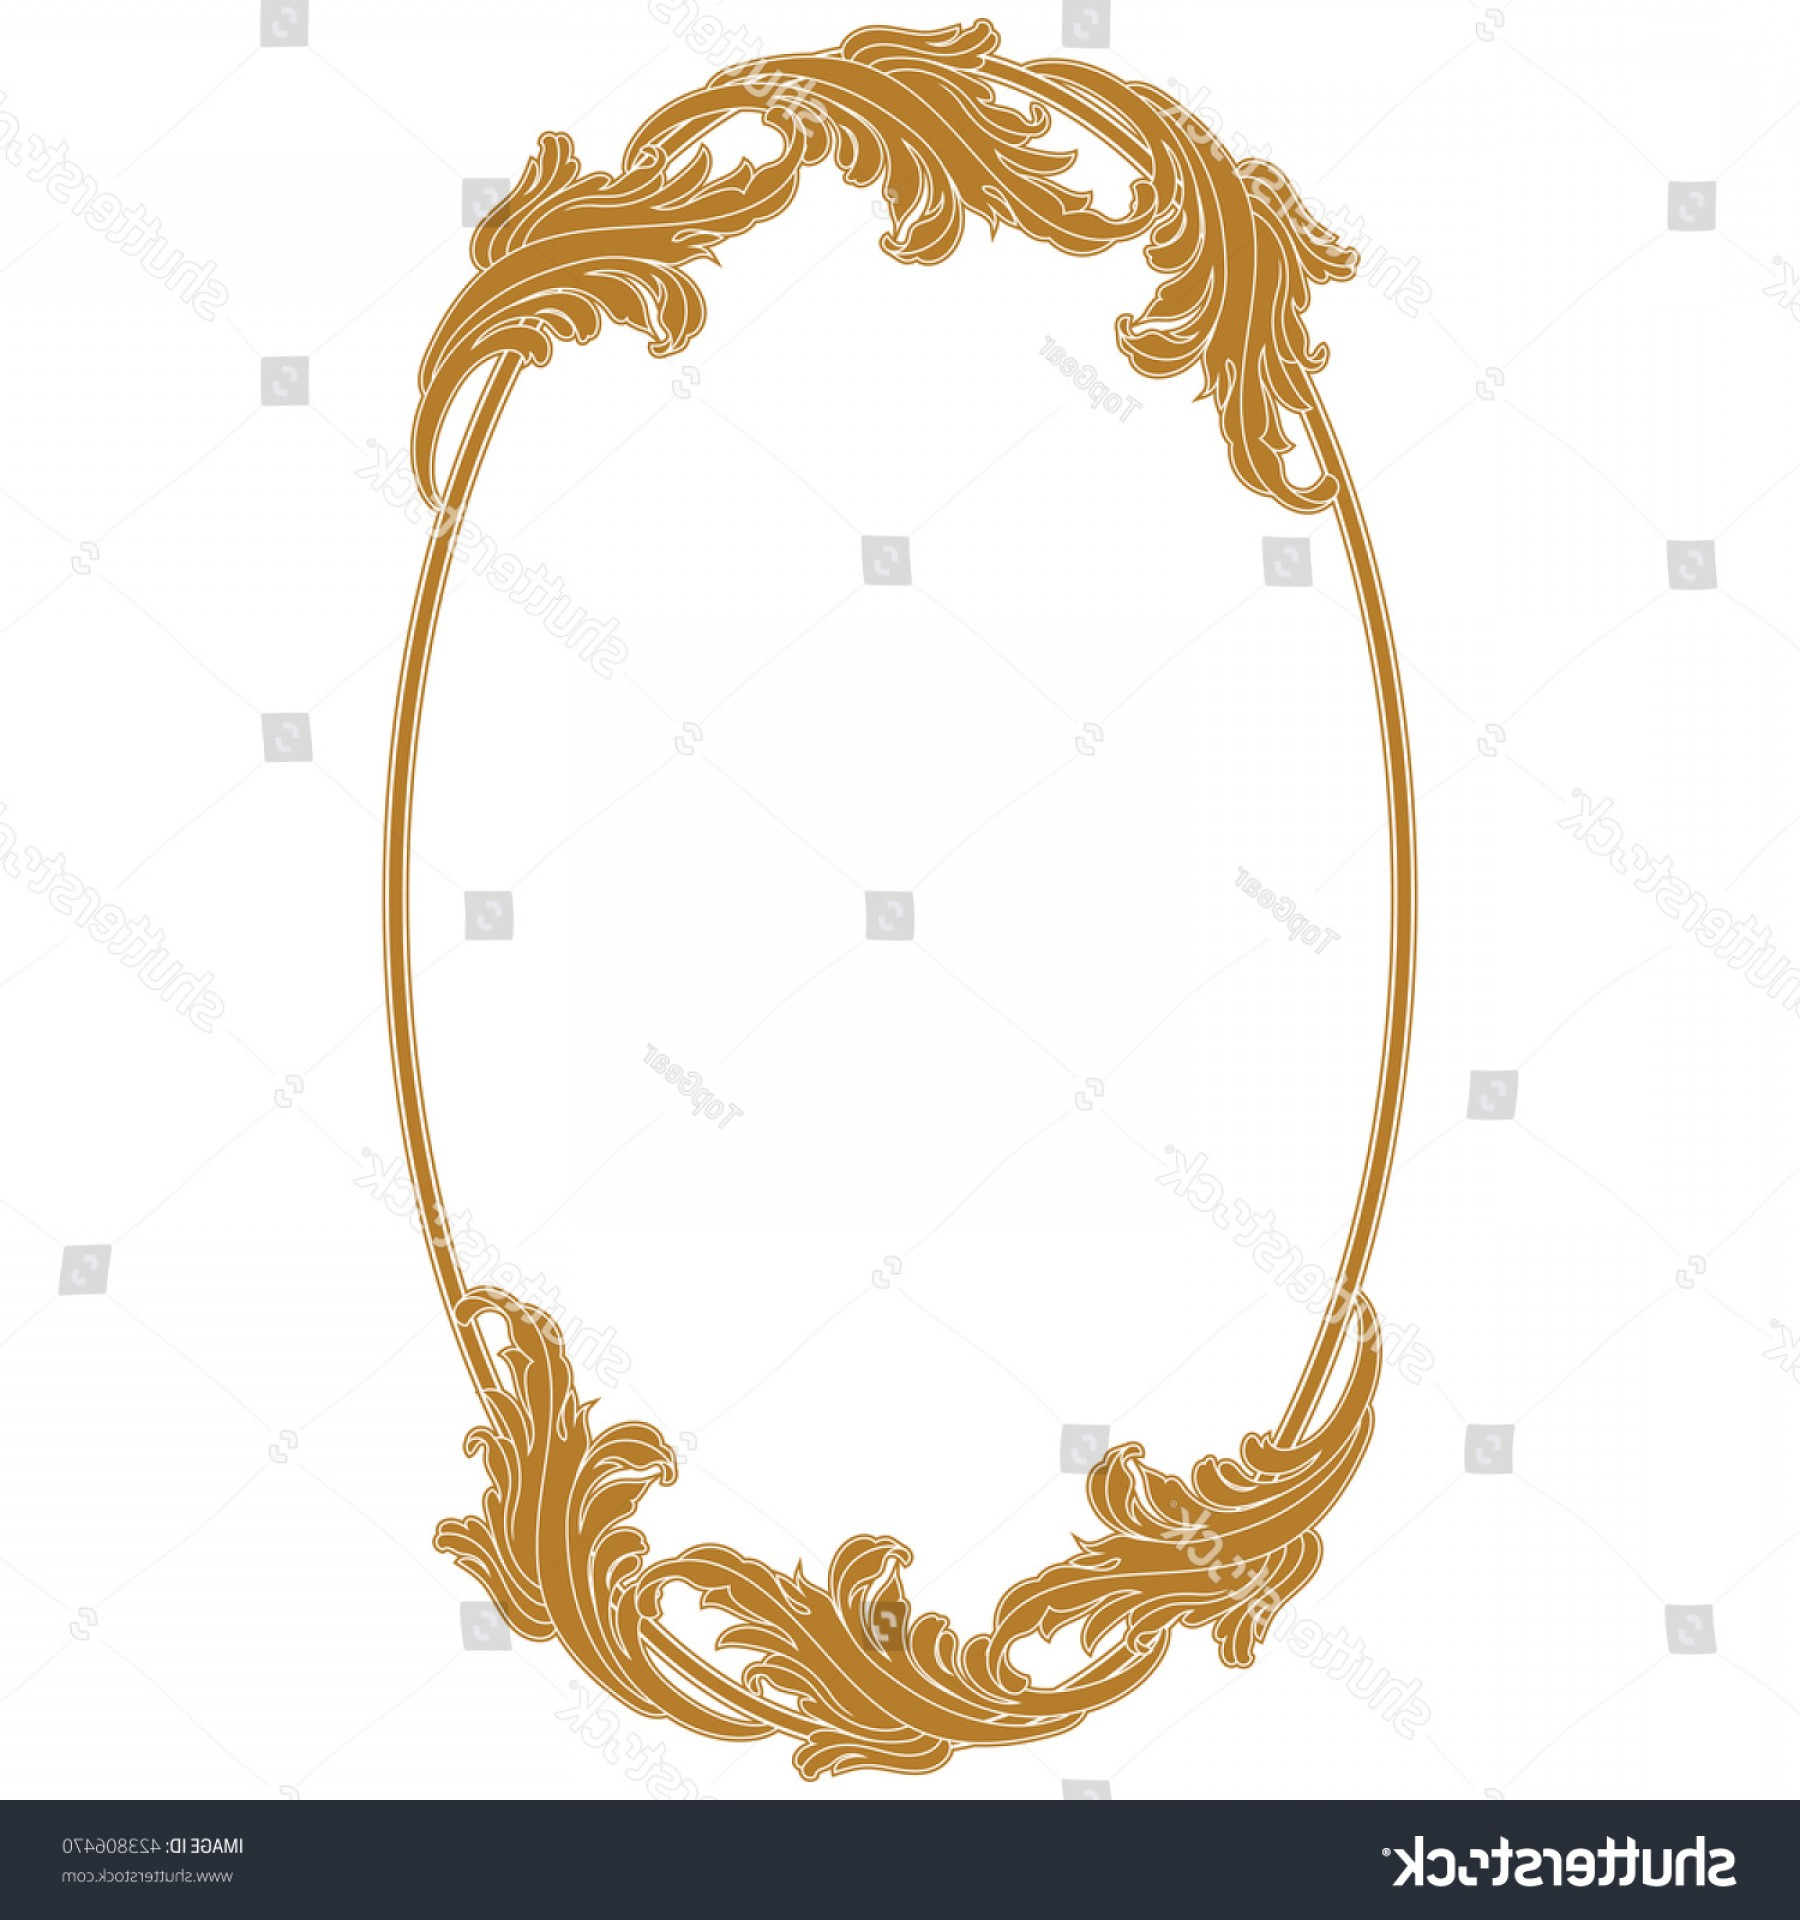 Filigree Oval Frame Vector: Golden Oval Vintage Frame Mirror Border